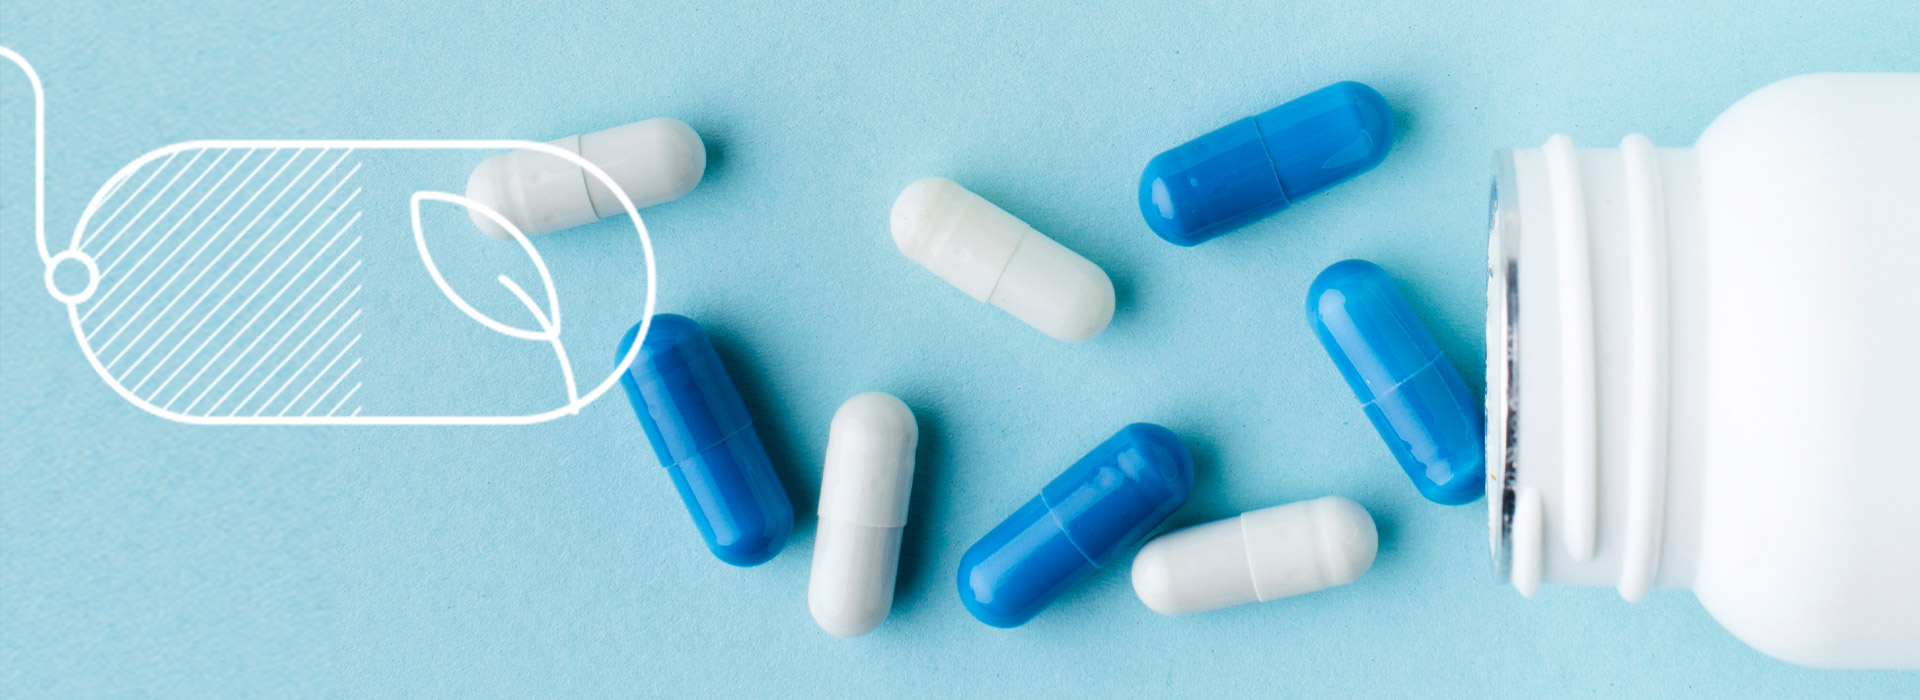 Gelatin capsules vs. HPMC capsules: What are the differences?